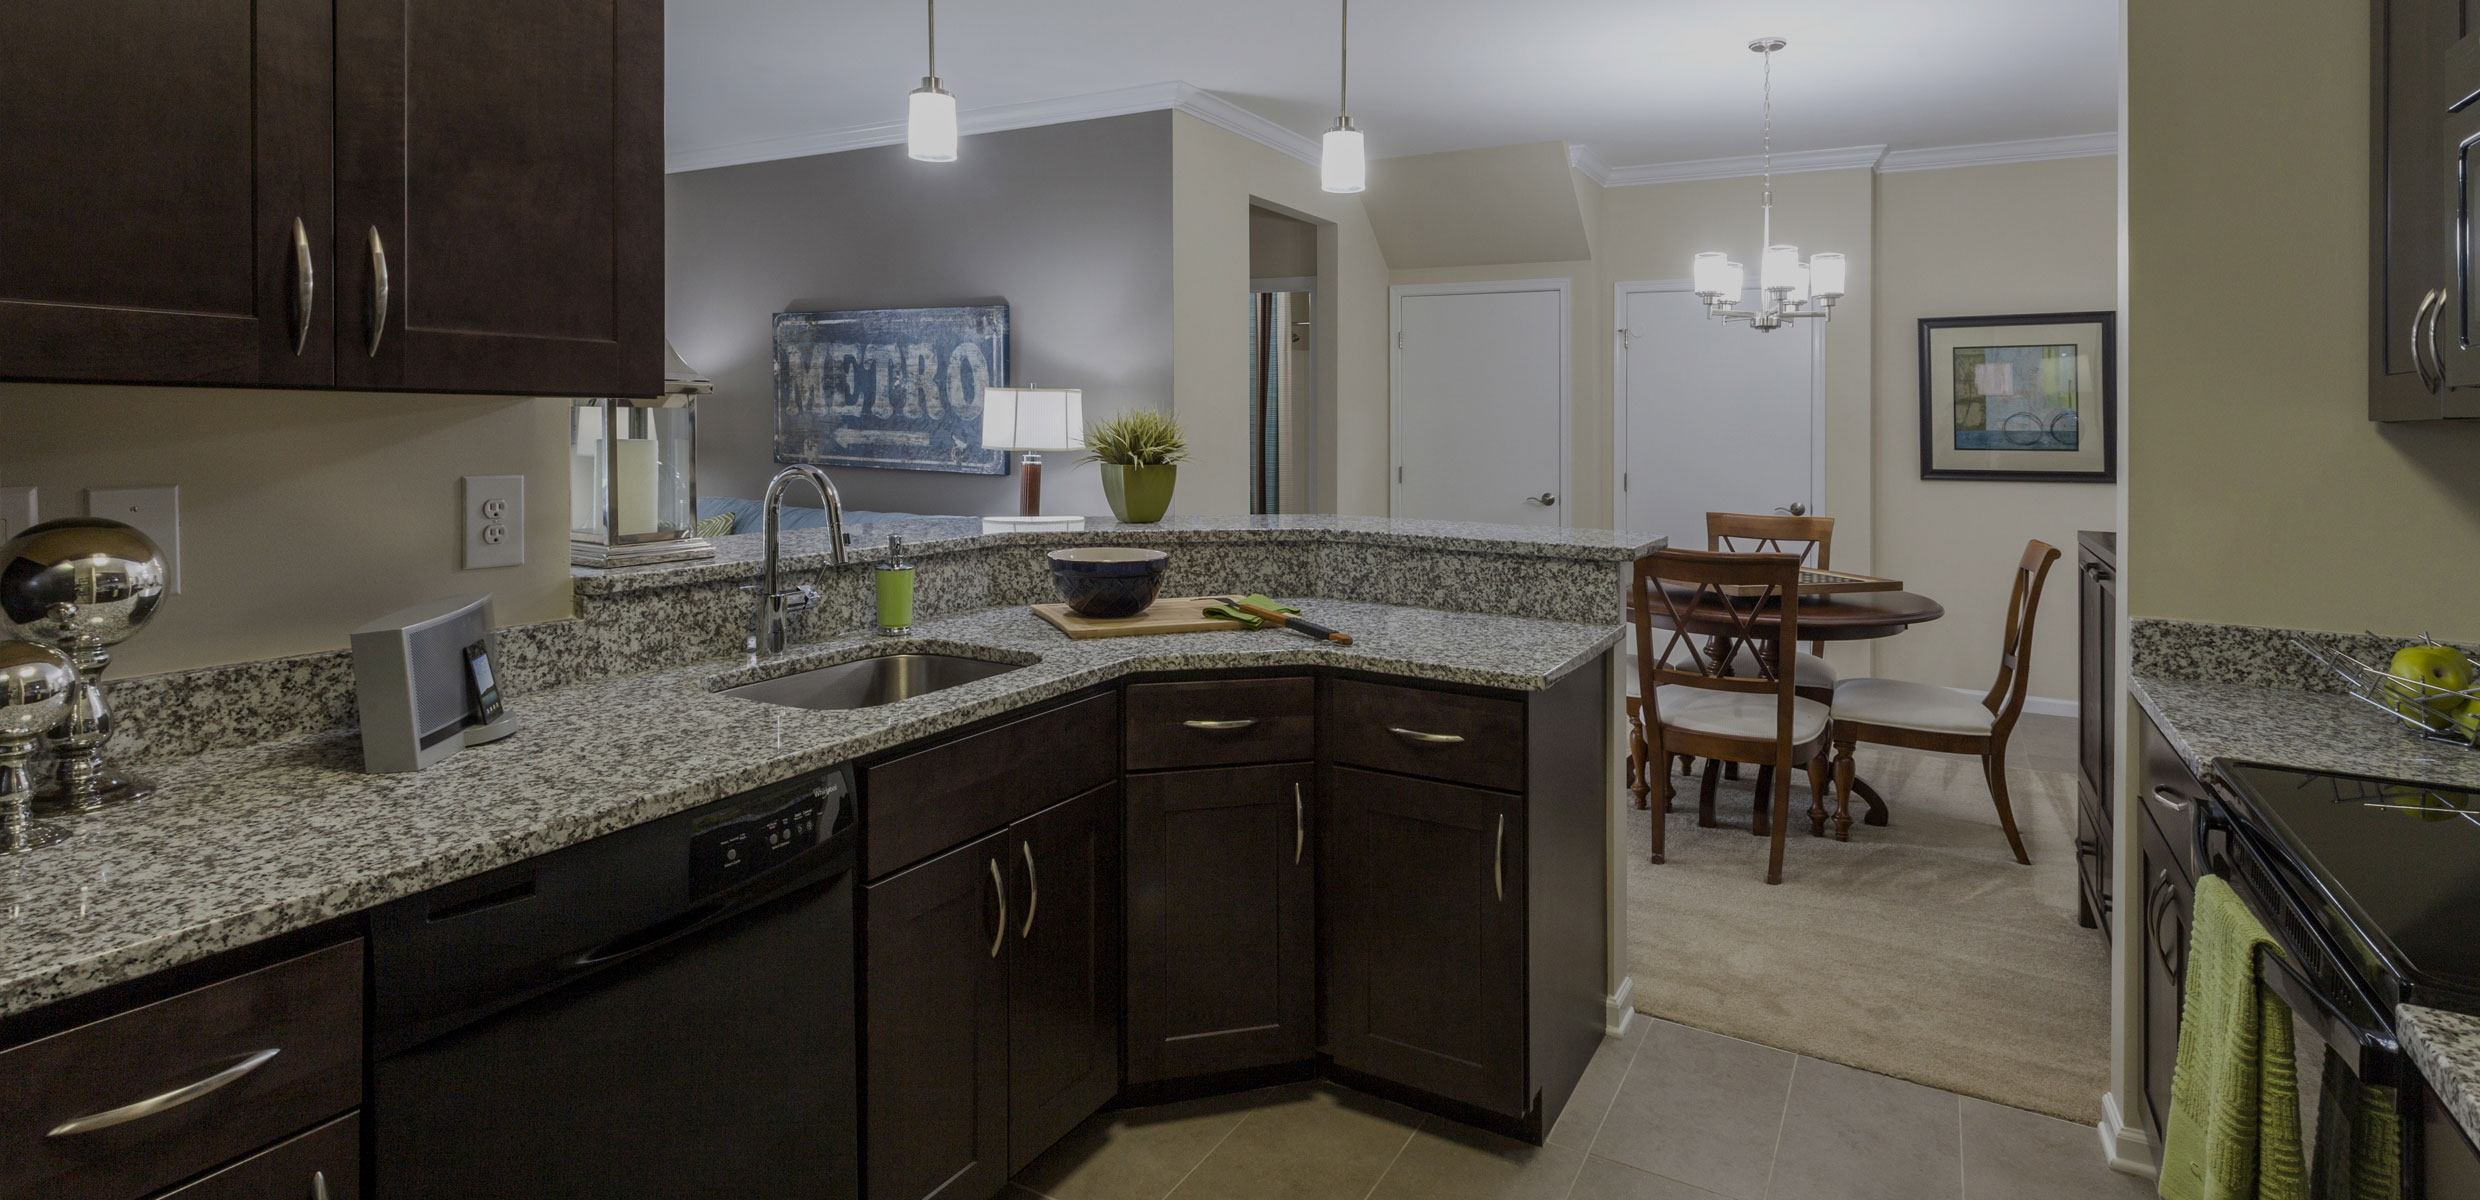 Chestnut Pointe Apartments Kitchen with espresso cabinetry and granite countertops